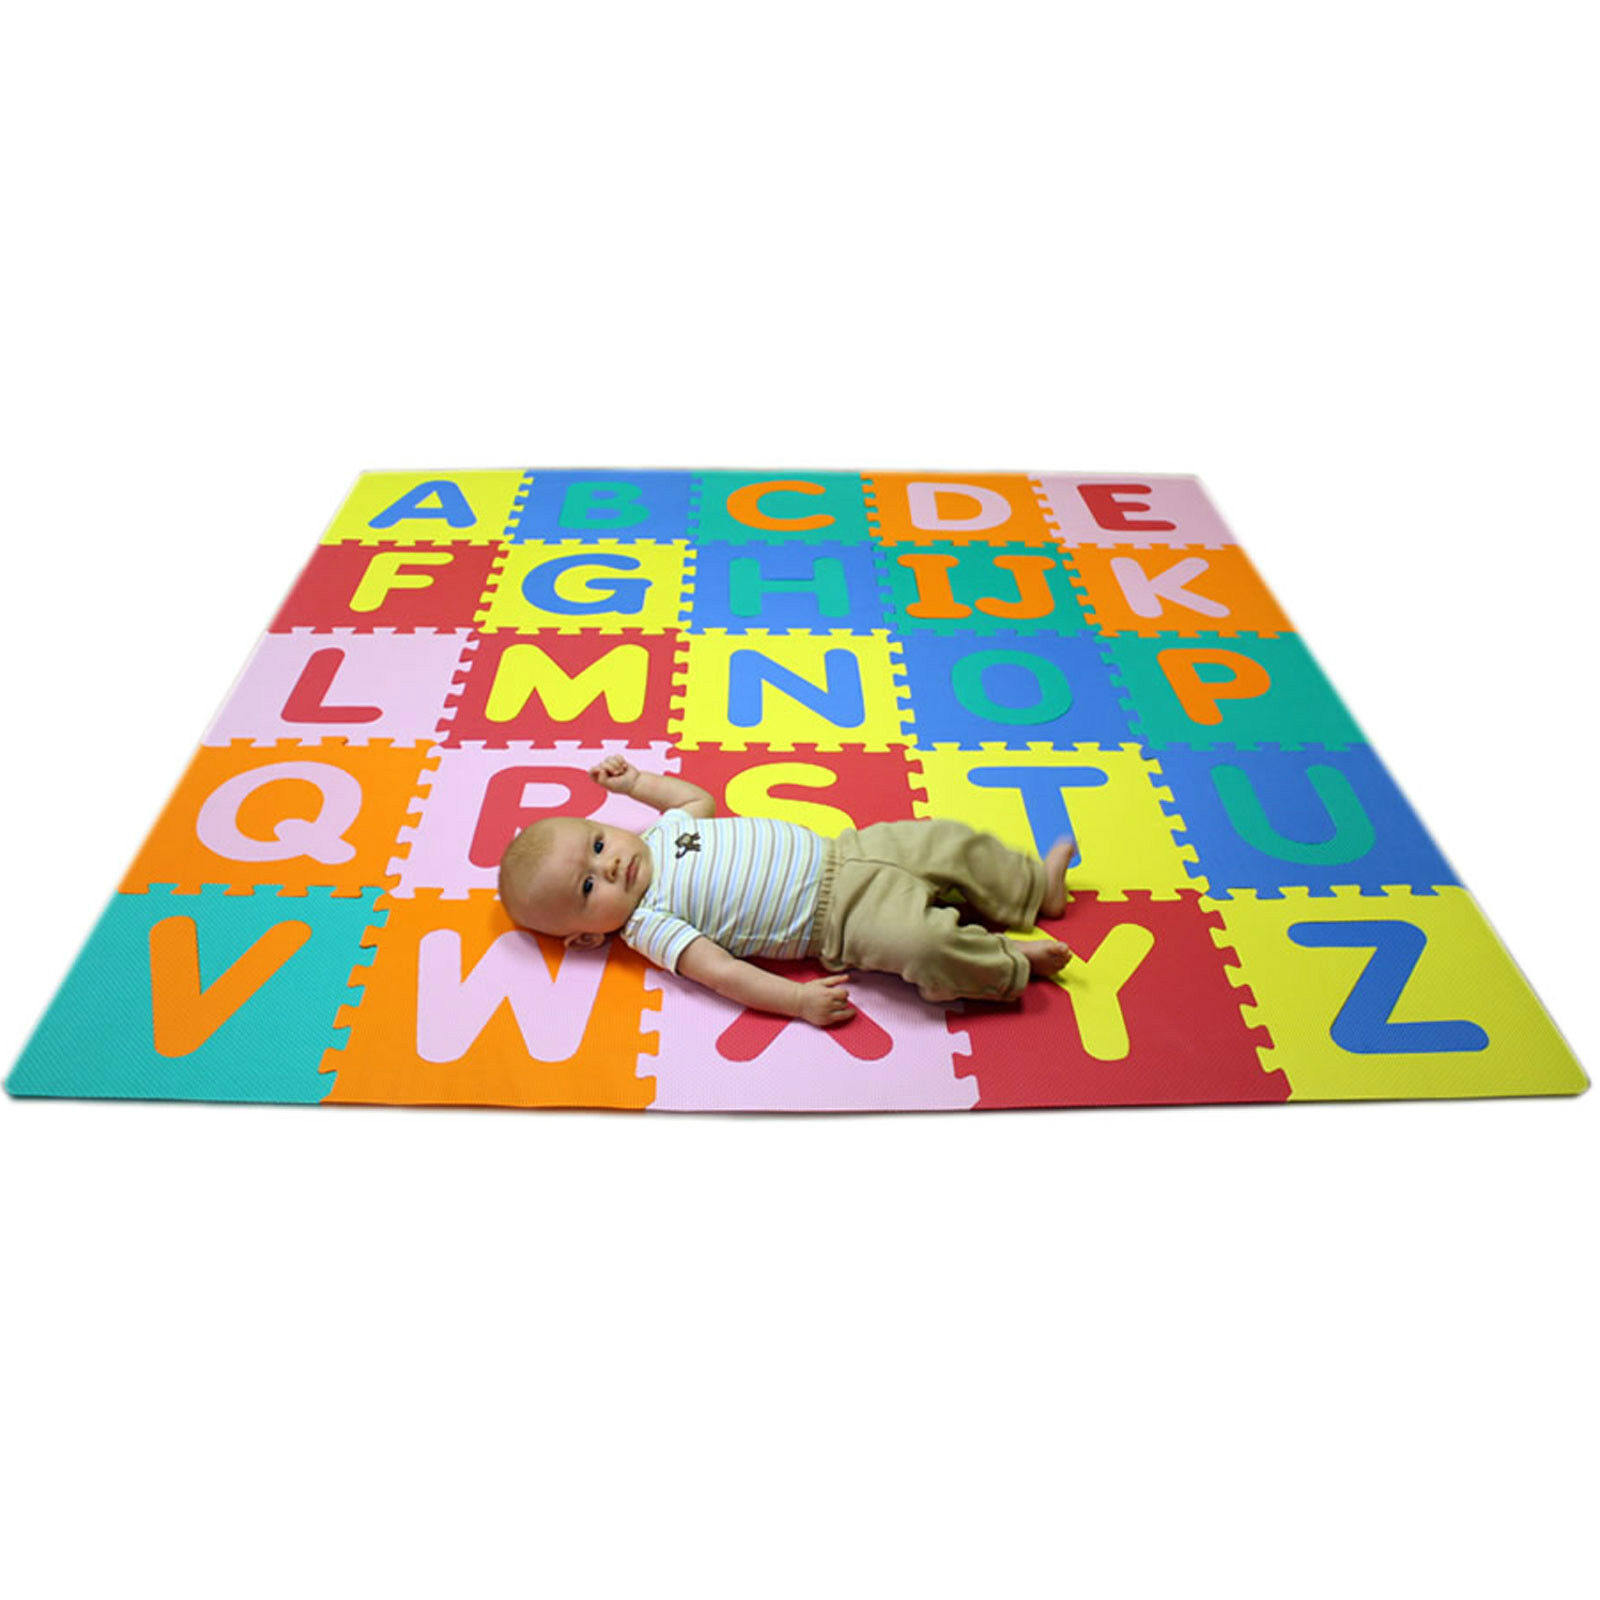 Rubber floor mats baby - Abc Foam Kids Baby Childrens Puzzle Play Interlocking Flooring Mats